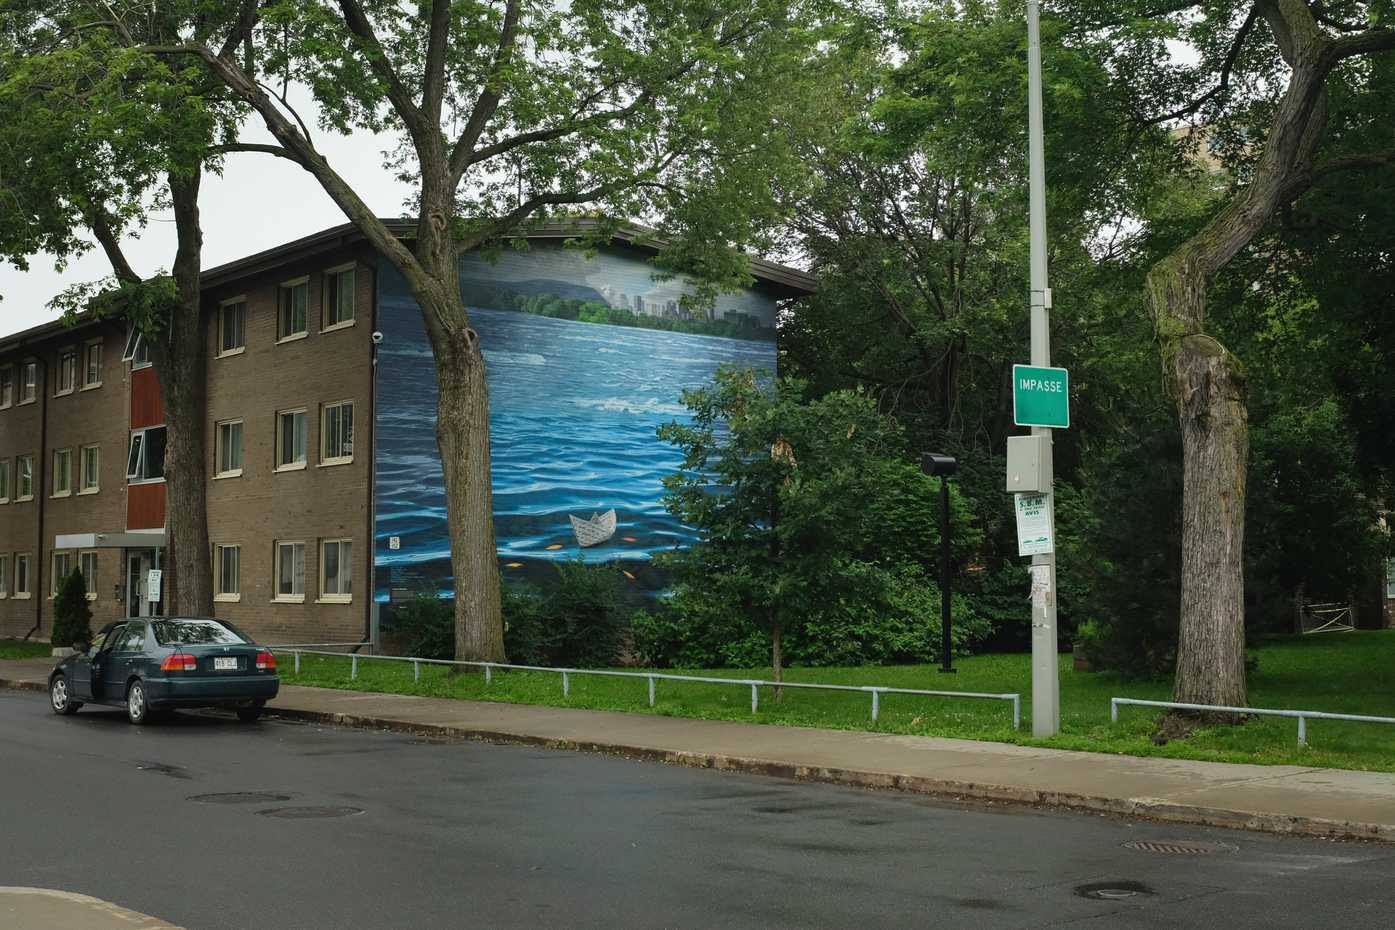 Montreal's public housing has some beautiful murals